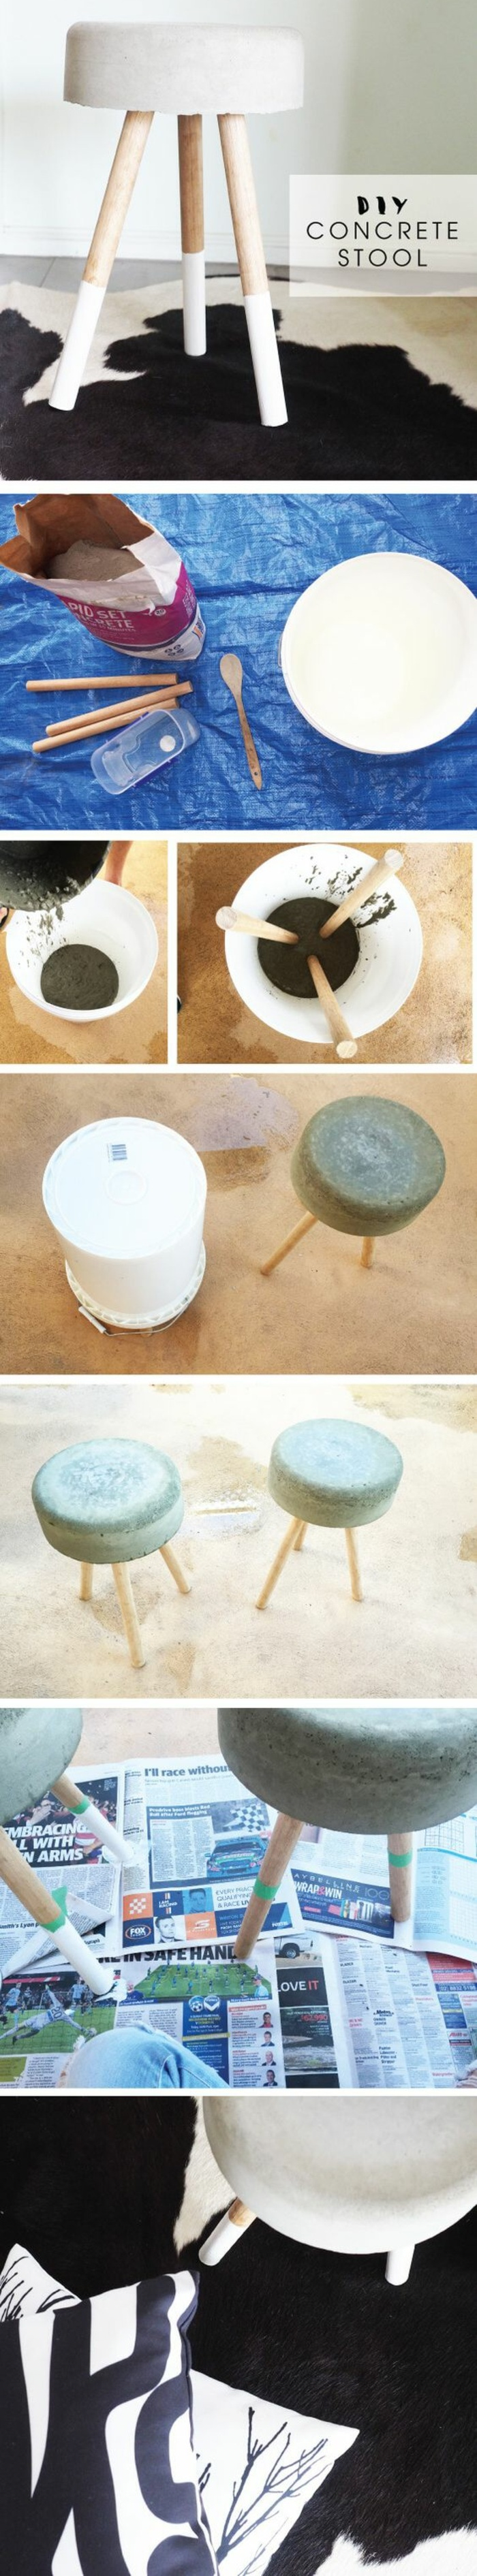 Crafting with concrete: a material, countless design options